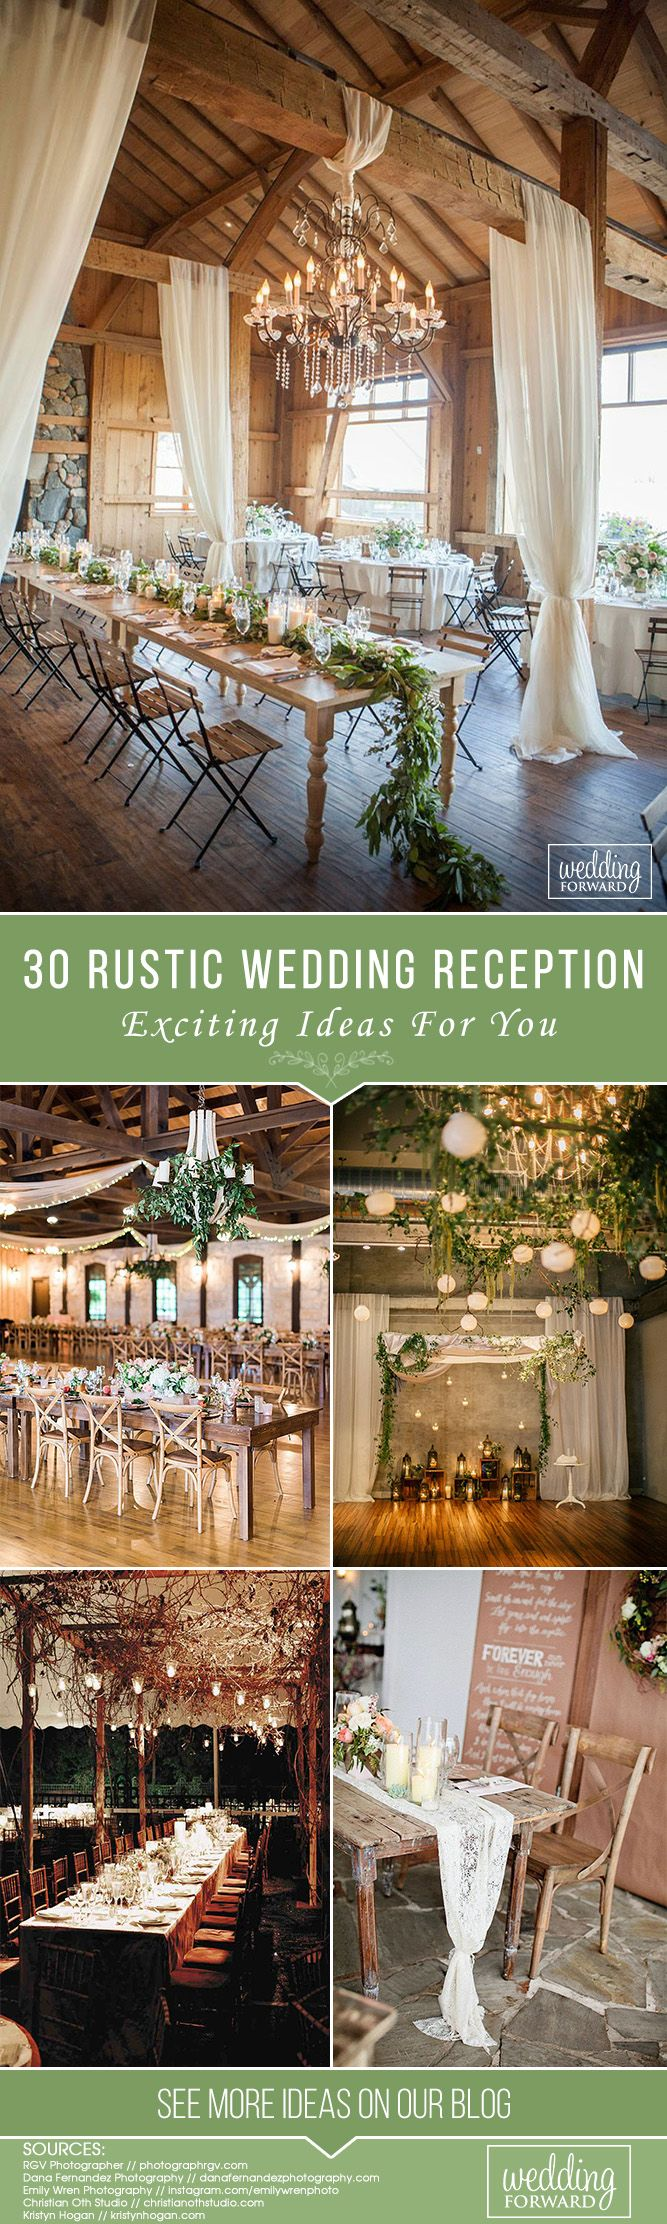 30 Rustic Wedding Reception Exciting Ideas ❤ If you plan a traditional ceremony, it is the very place where you will find really exciting and fresh ideas for your rustic wedding reception. See more: http://www.weddingforward.com/rustic-wedding-reception/ #weddings #decor #weddingdecor #rusticwedding #rusticweddingreception